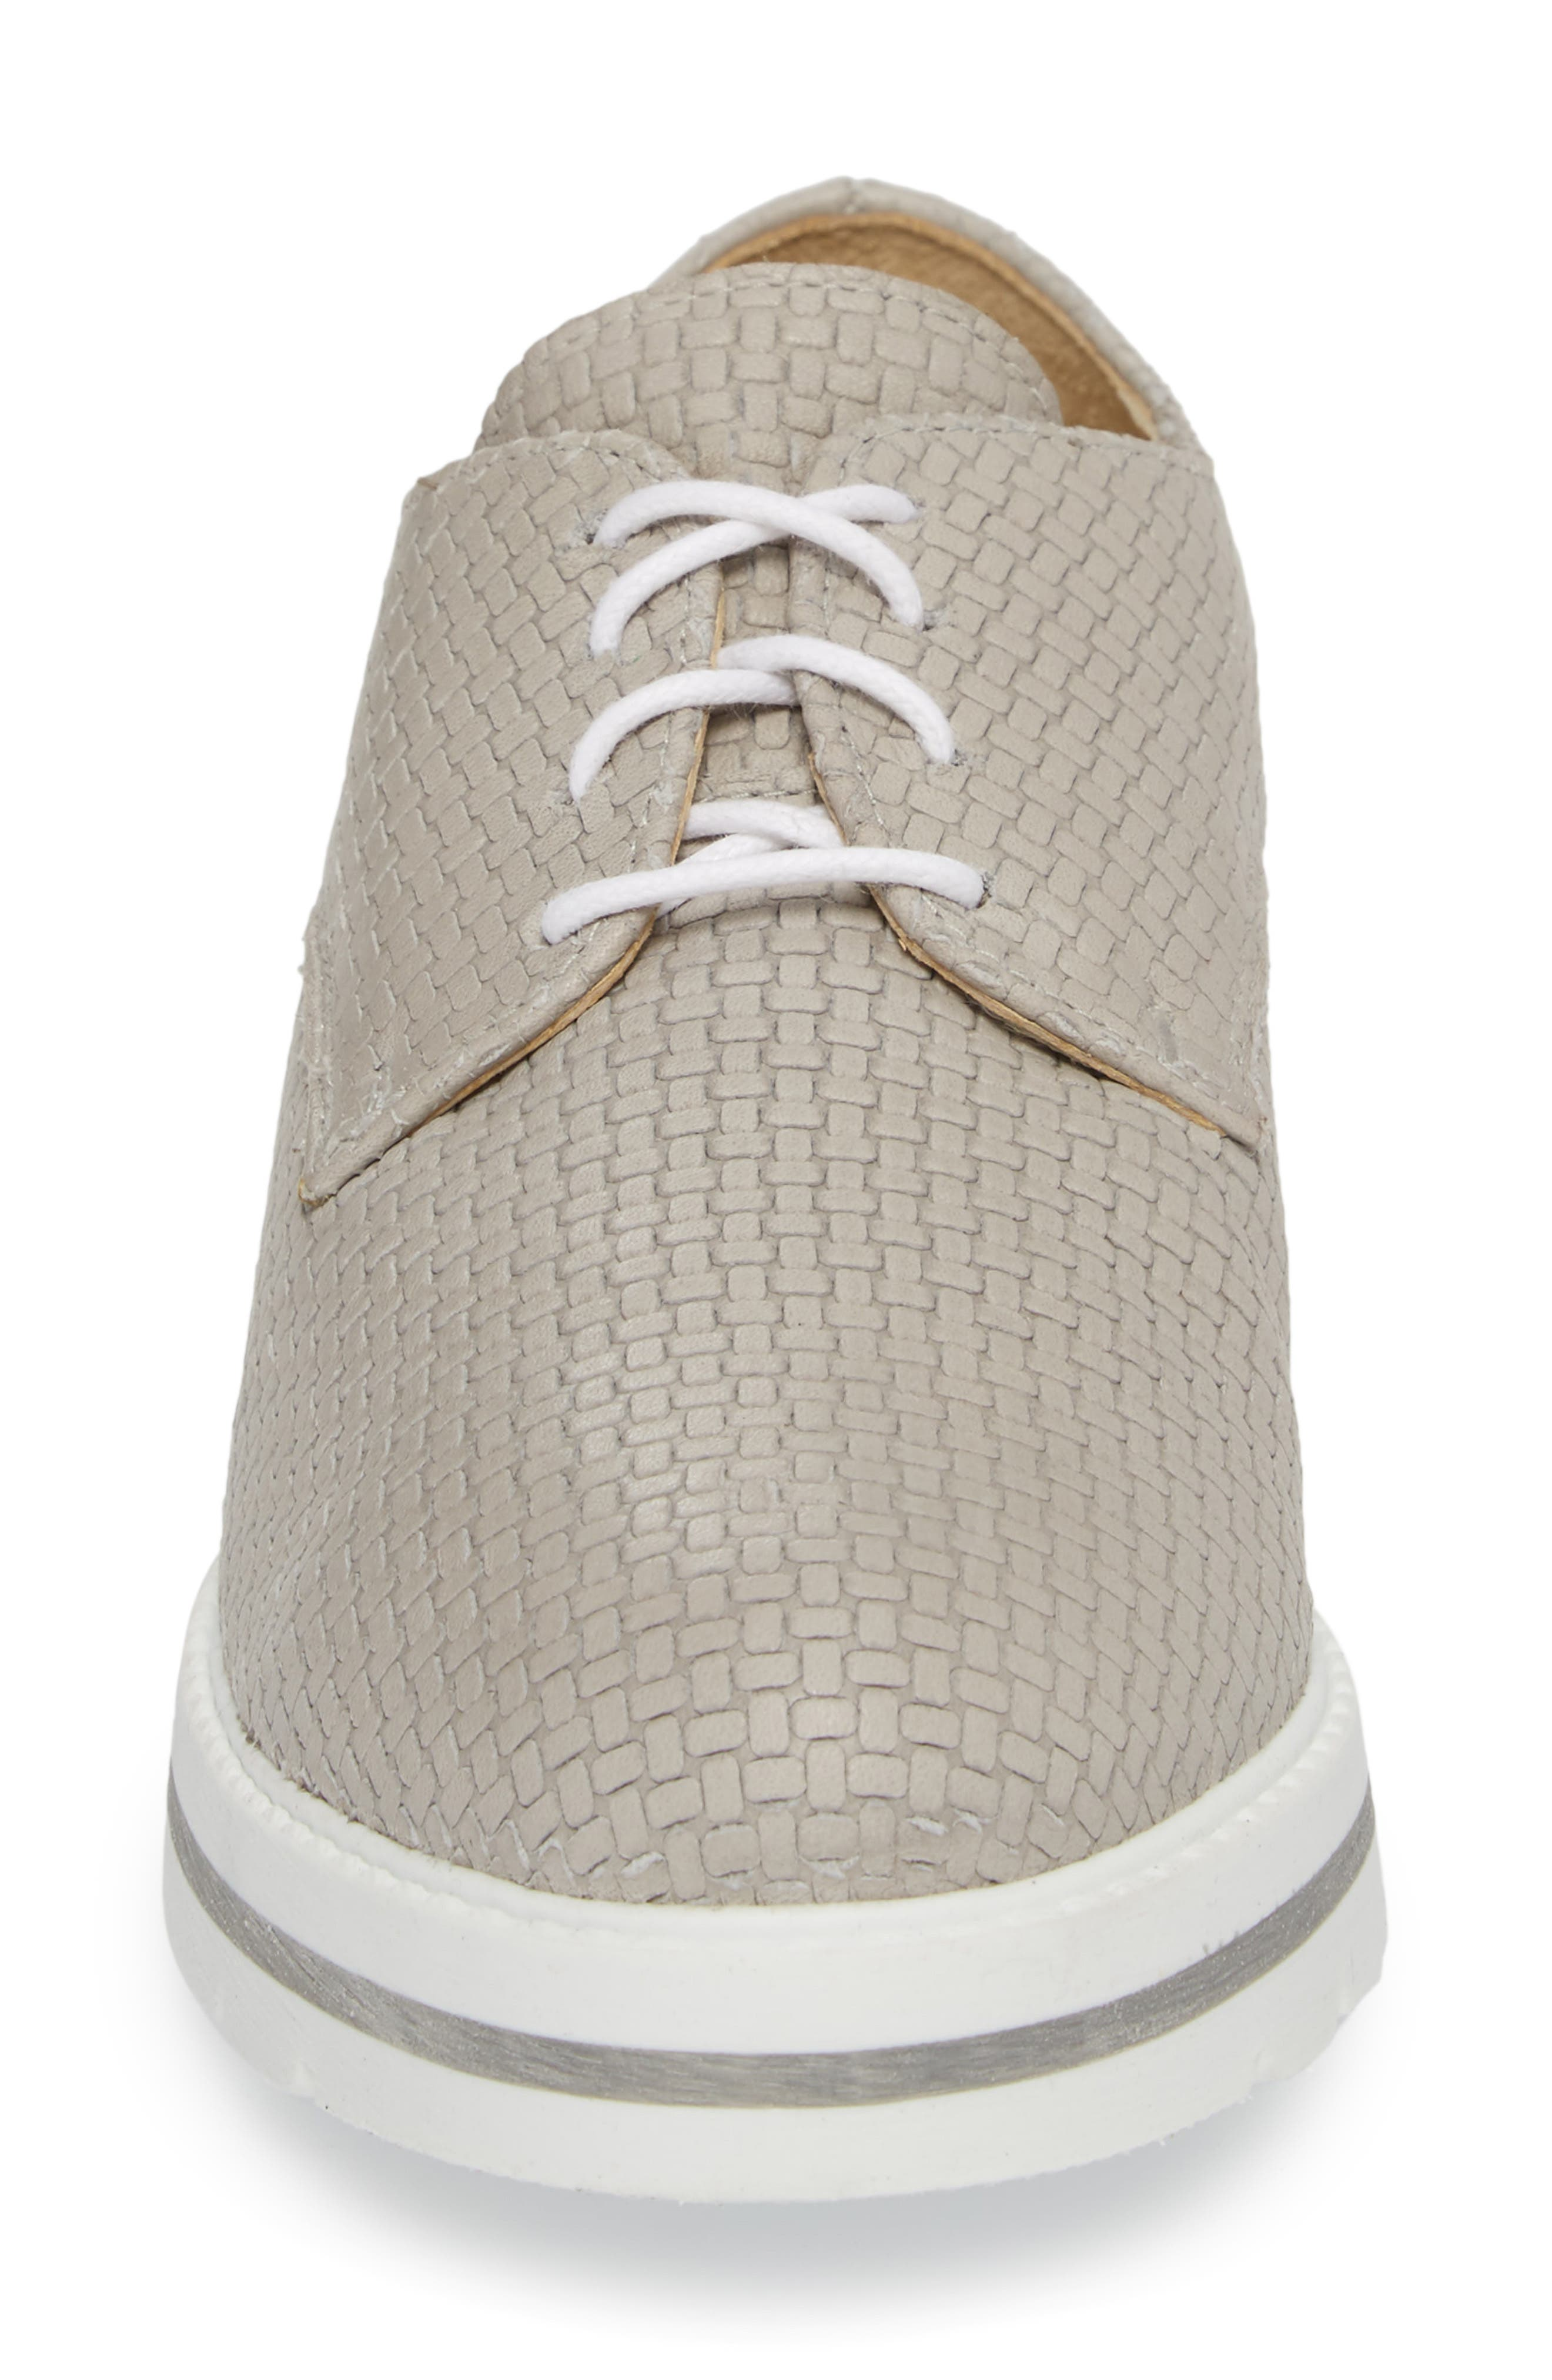 Lando Sneaker Derby,                             Alternate thumbnail 6, color,                             Light Grey Sauvage Leather